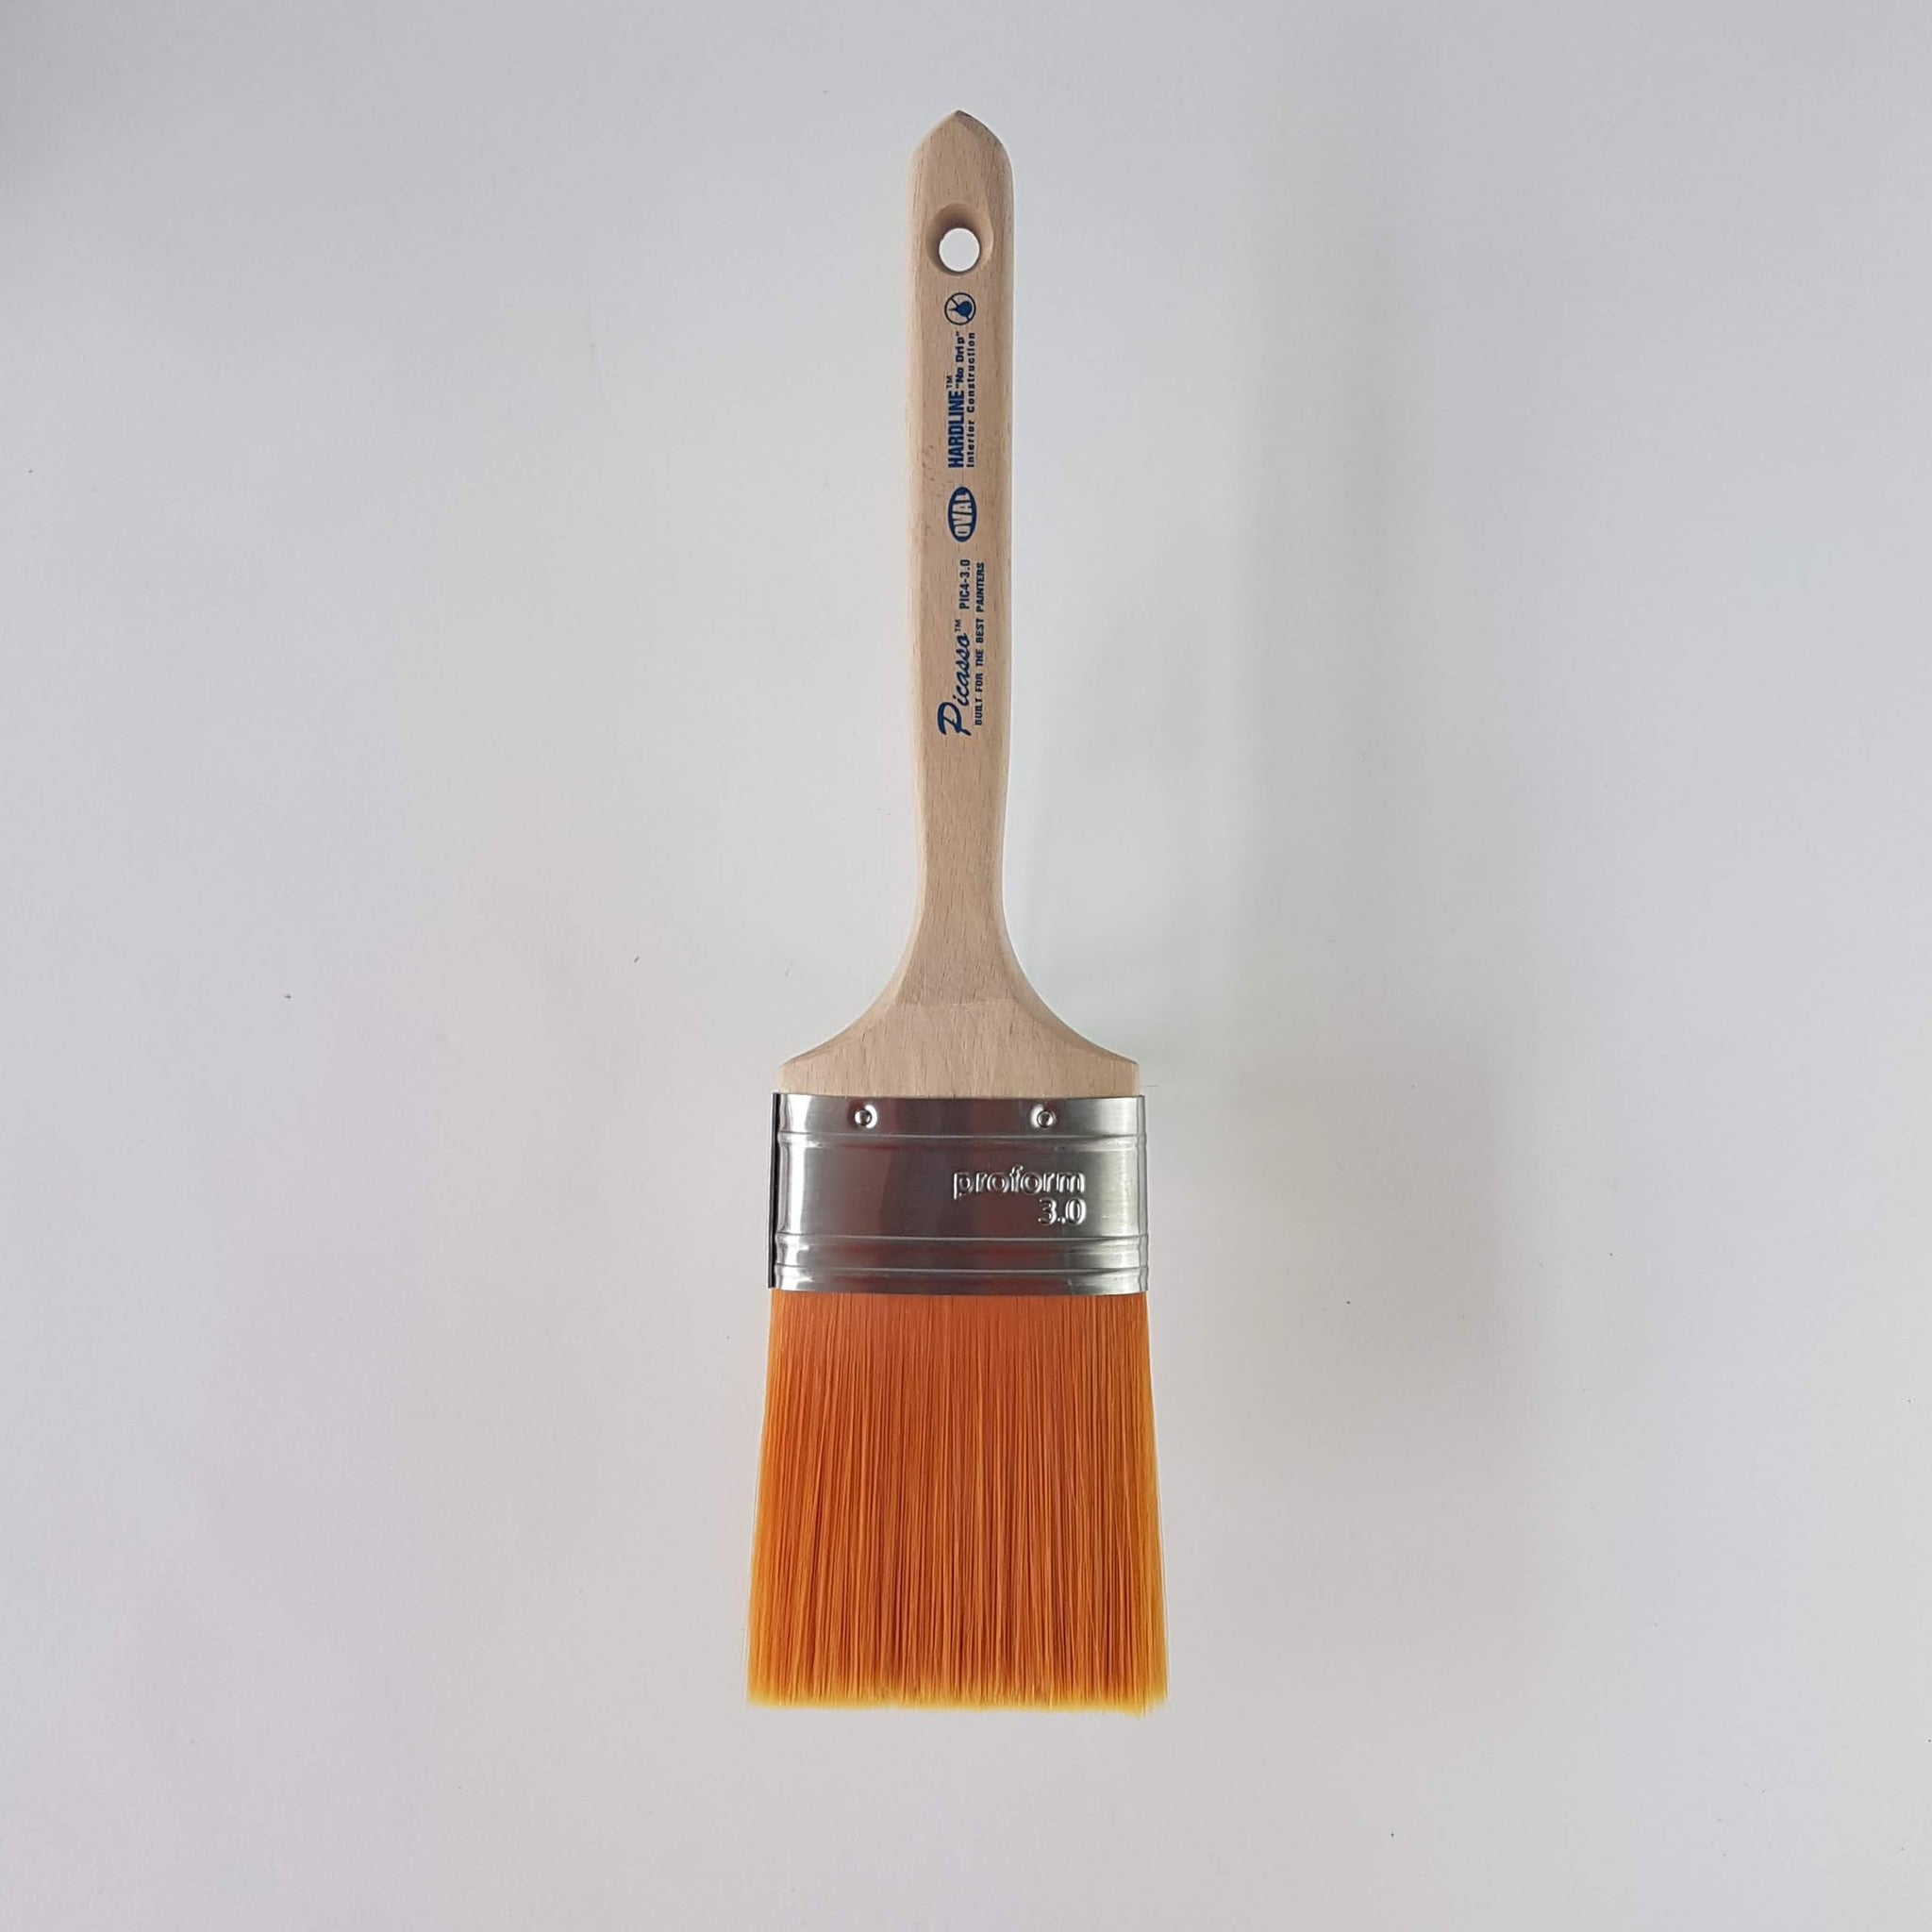 Proform Picasso Oval Brushes